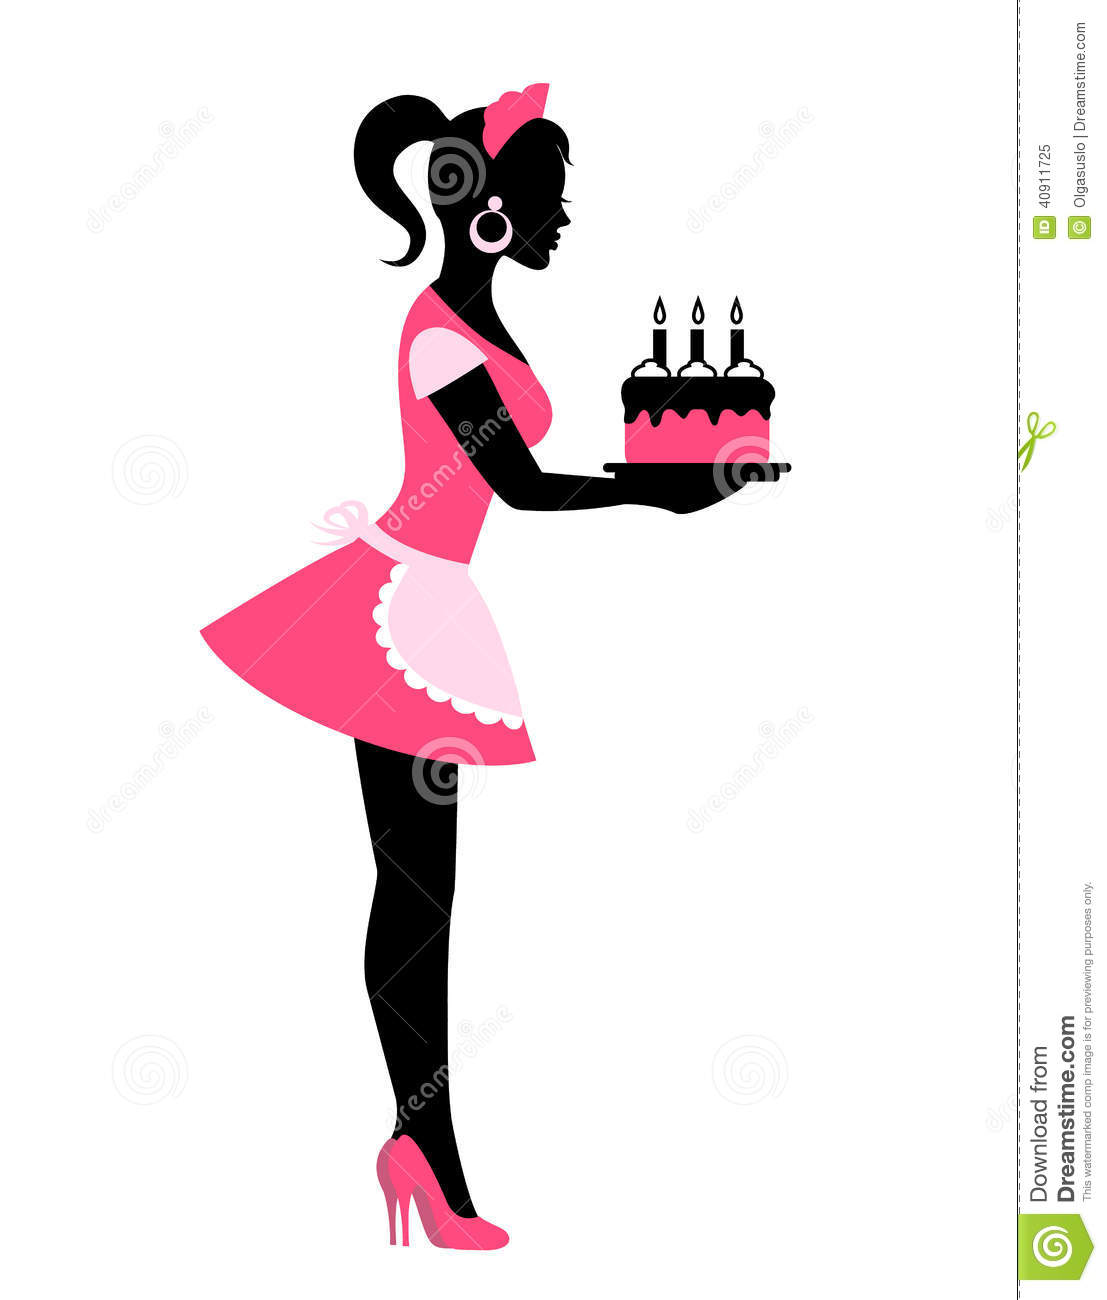 Silhouette Of A Woman Holding A Cake With Candles Stock Vector   Image